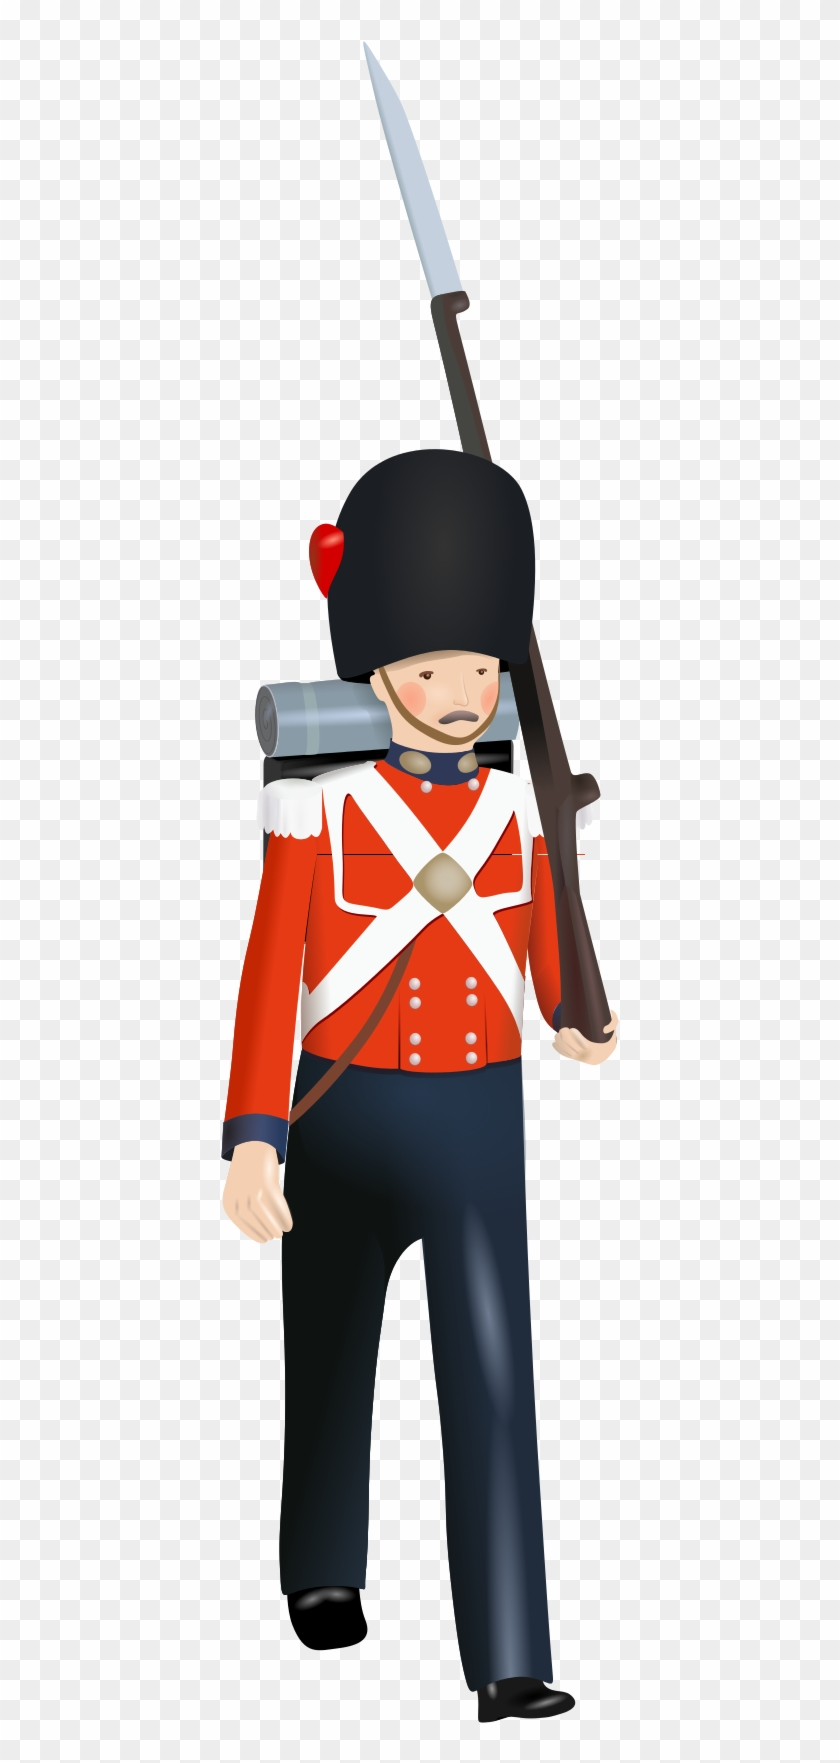 File - Toy Soldier - Svg - Toy Soldier Icon #1660795